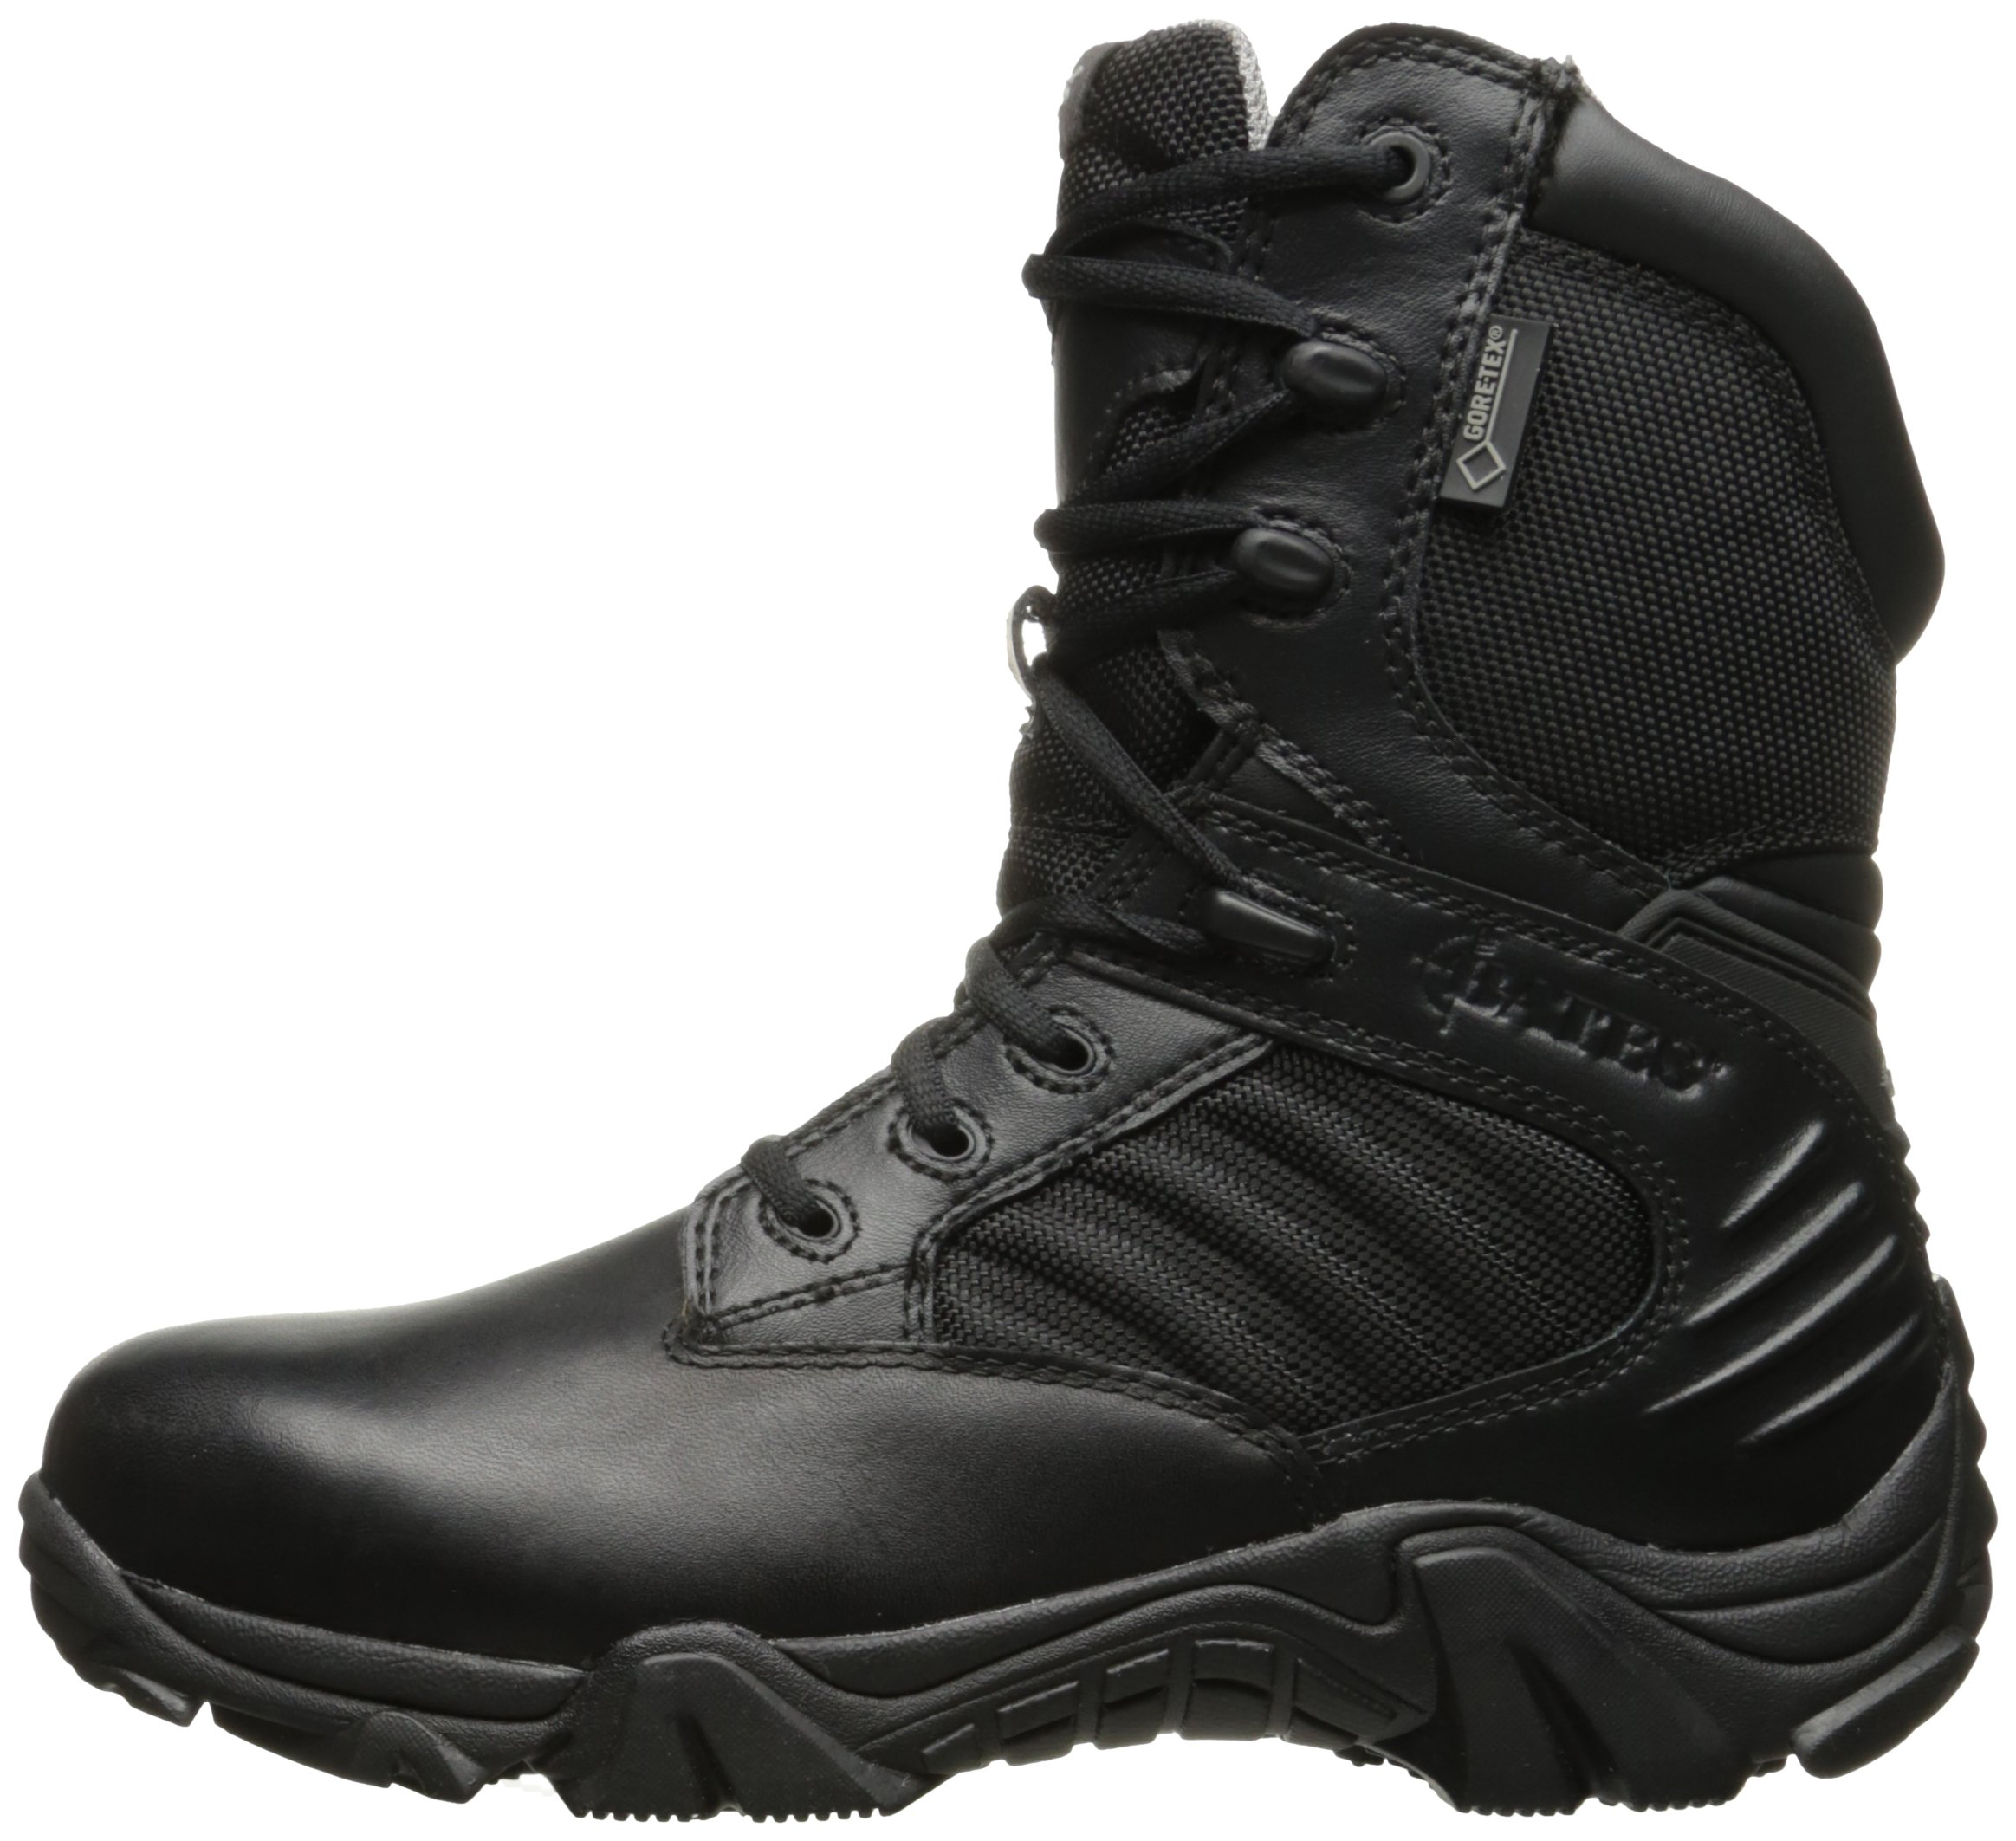 Bates Women's GX-8 Gore-Tex Insulated Side Zip Fire and Safety Shoe, Black, 9 M US by Bates (Image #5)